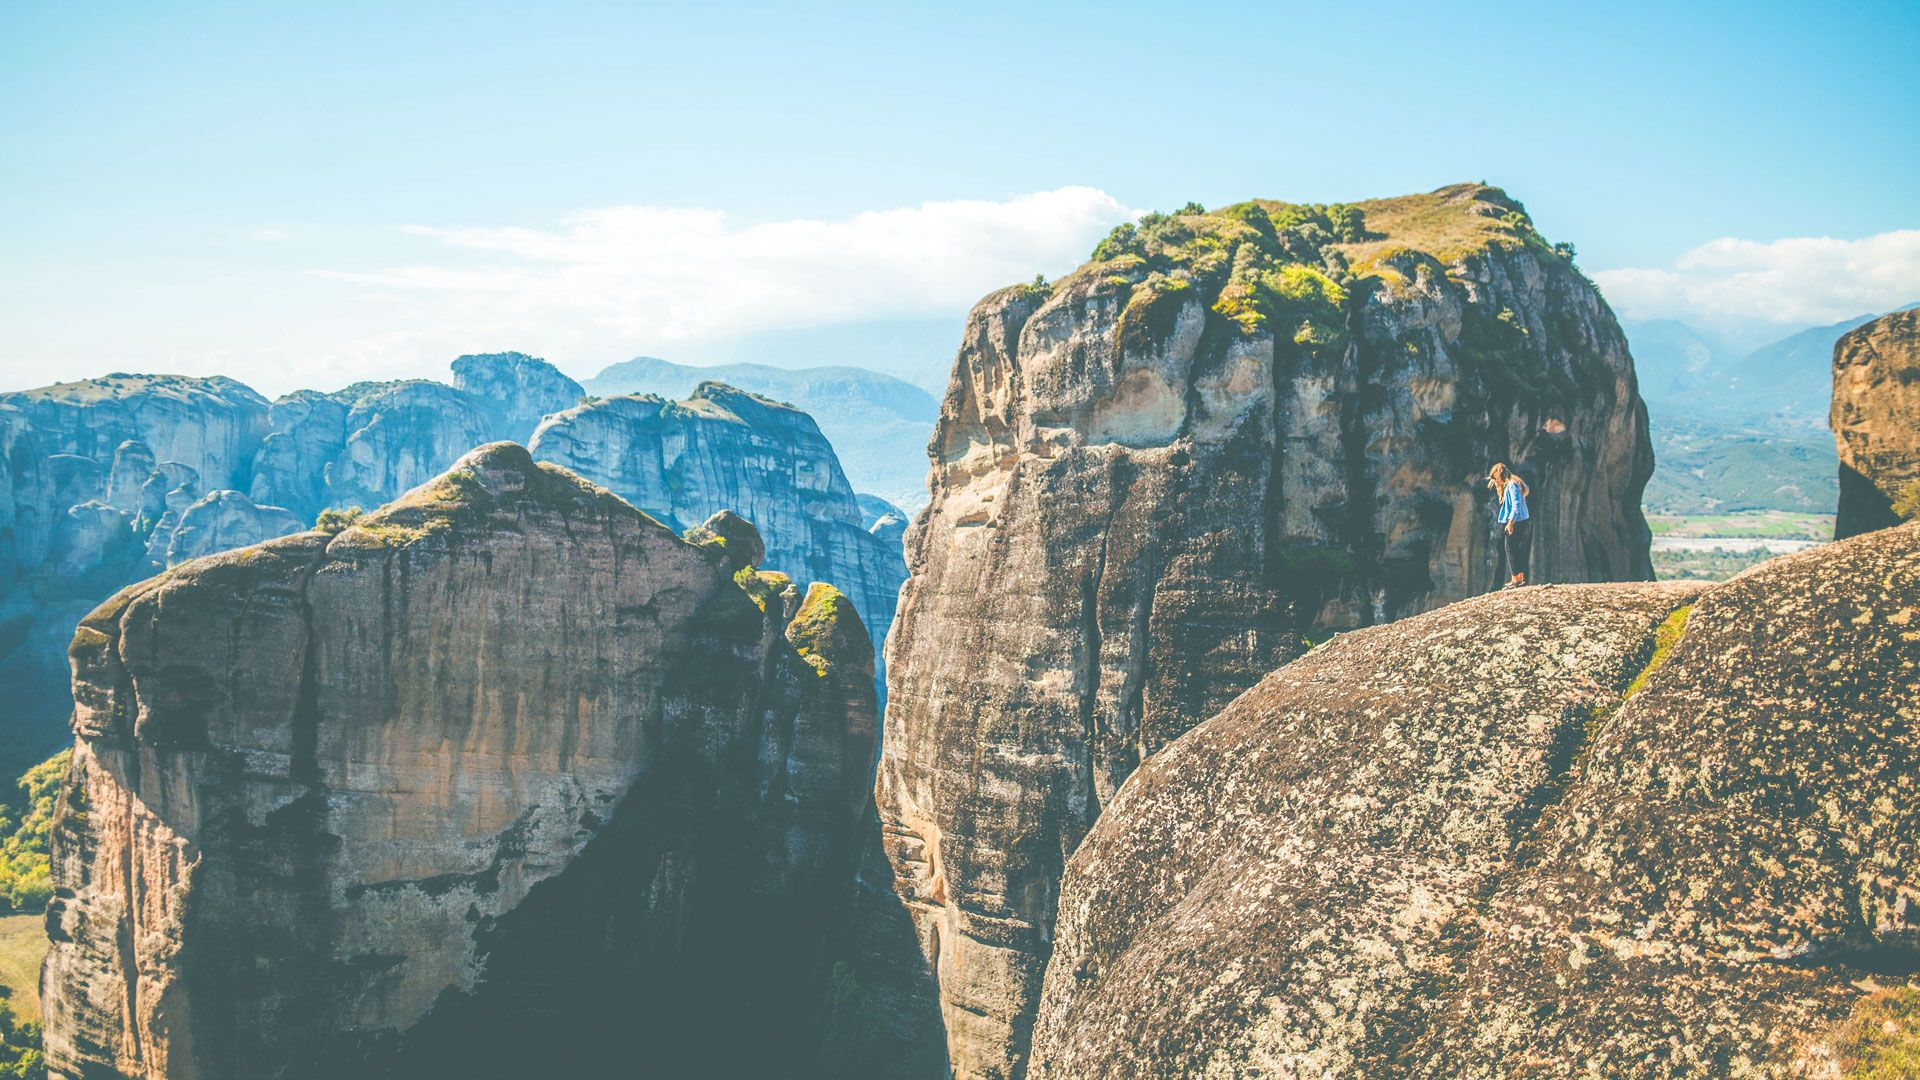 Hike among the gigantic rock pillars of Meteora to enjoy truly breathtaking views